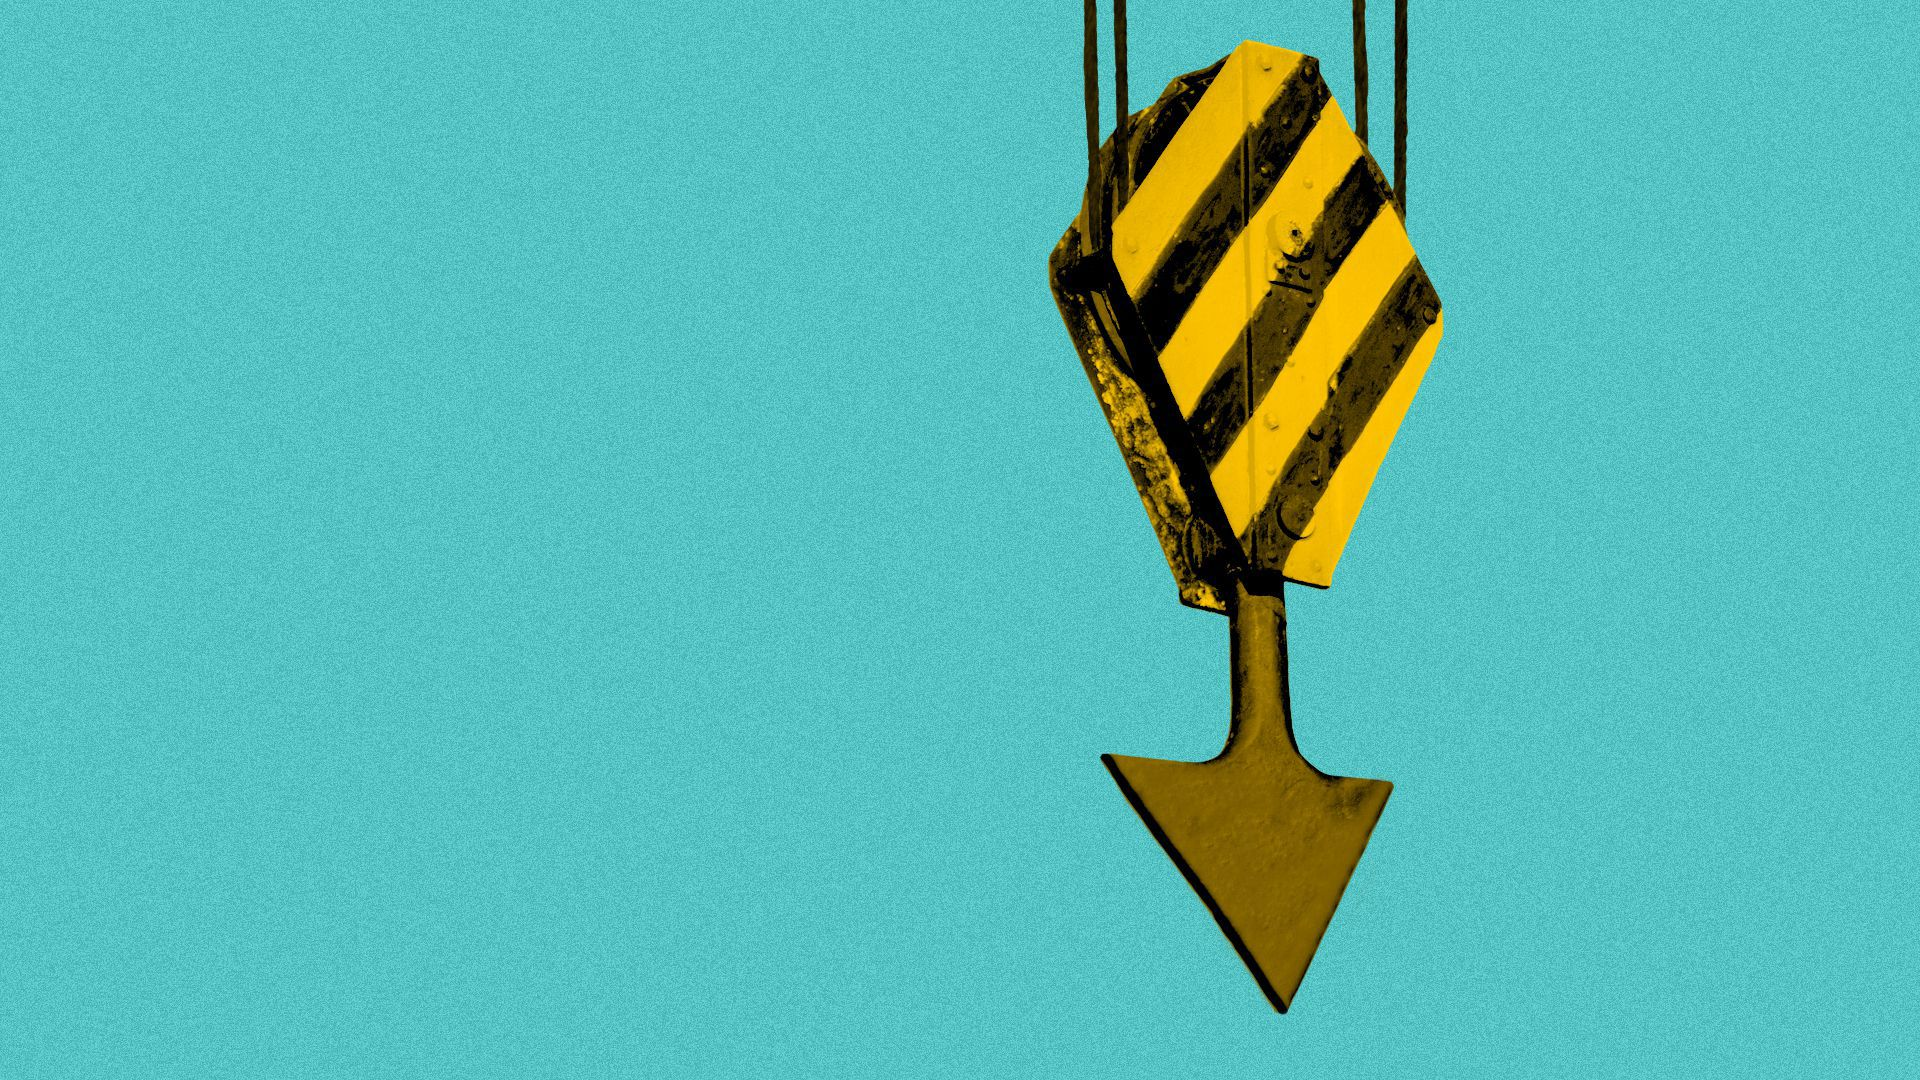 Illustration of a construction crane hook with a downward arrow instead of a hook.